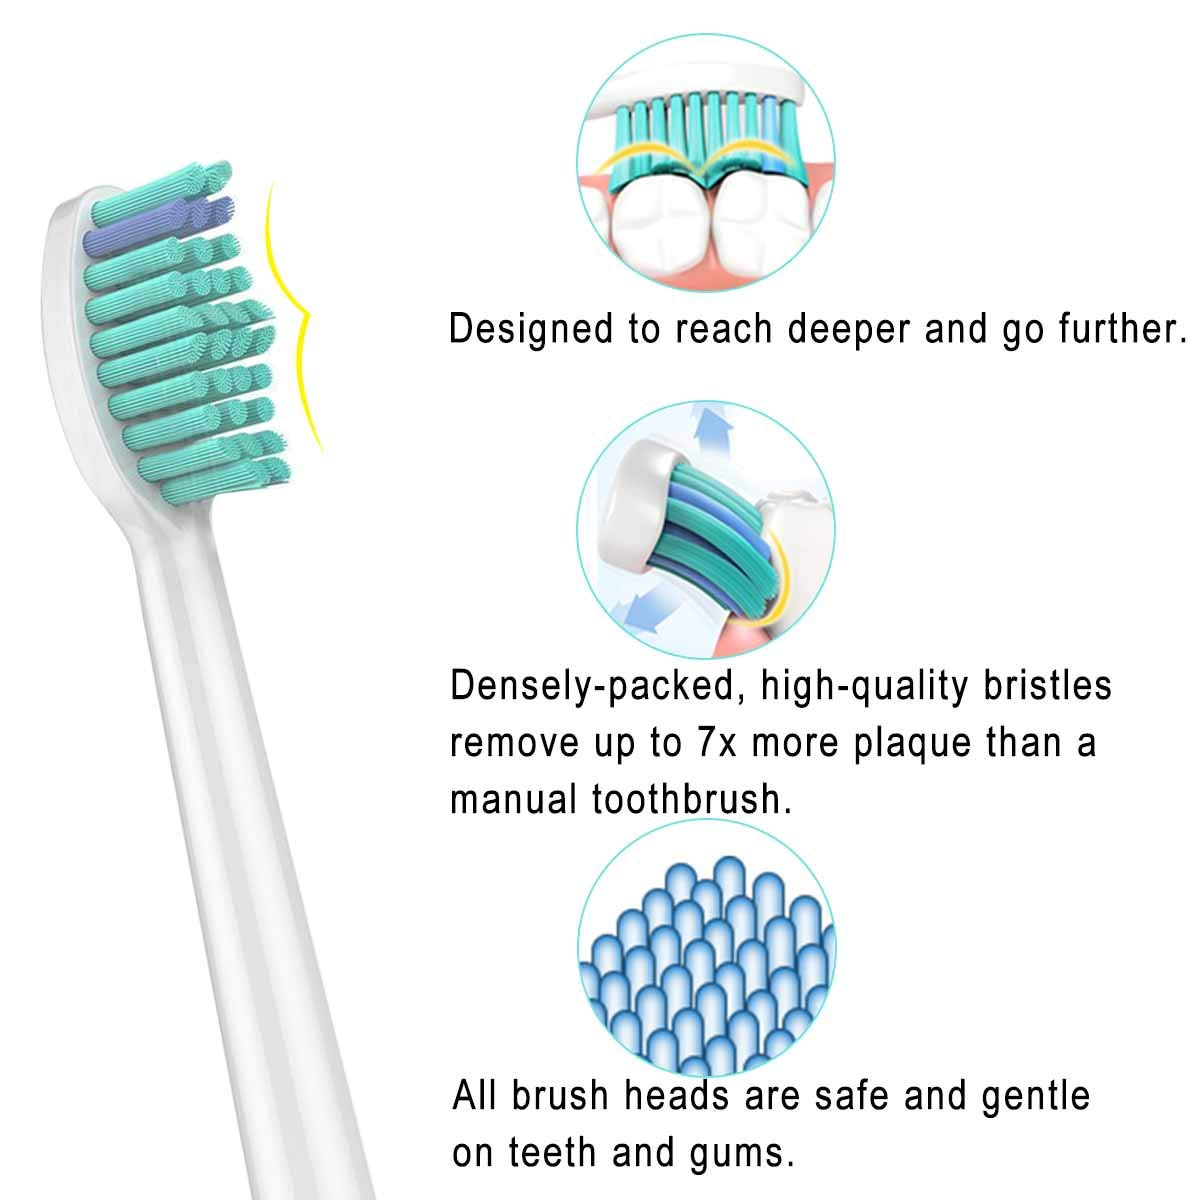 Replacement Toothbrush Heads,10Pack Replacement Heads for Phillips Sonicare DiamondClean,FlexCare,HealthyWhite,EasyClean,Essence+(plus),More Sonic Snap-On Brush Handles